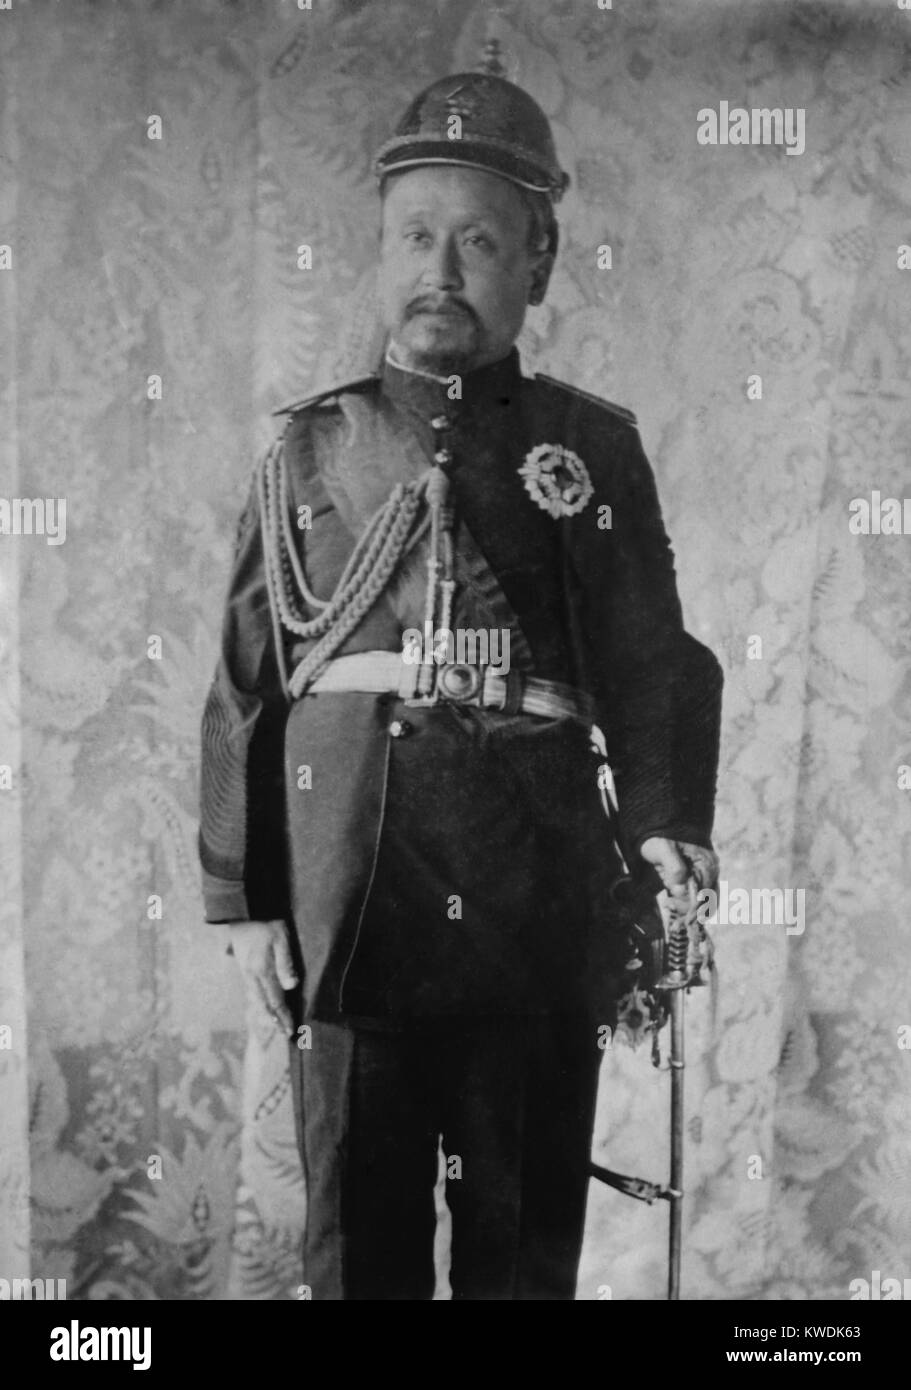 Emperor Gojong of Korea, in uniform in 1904. The Japanese forced his abdication in July 1907, replacing him with - Stock Image